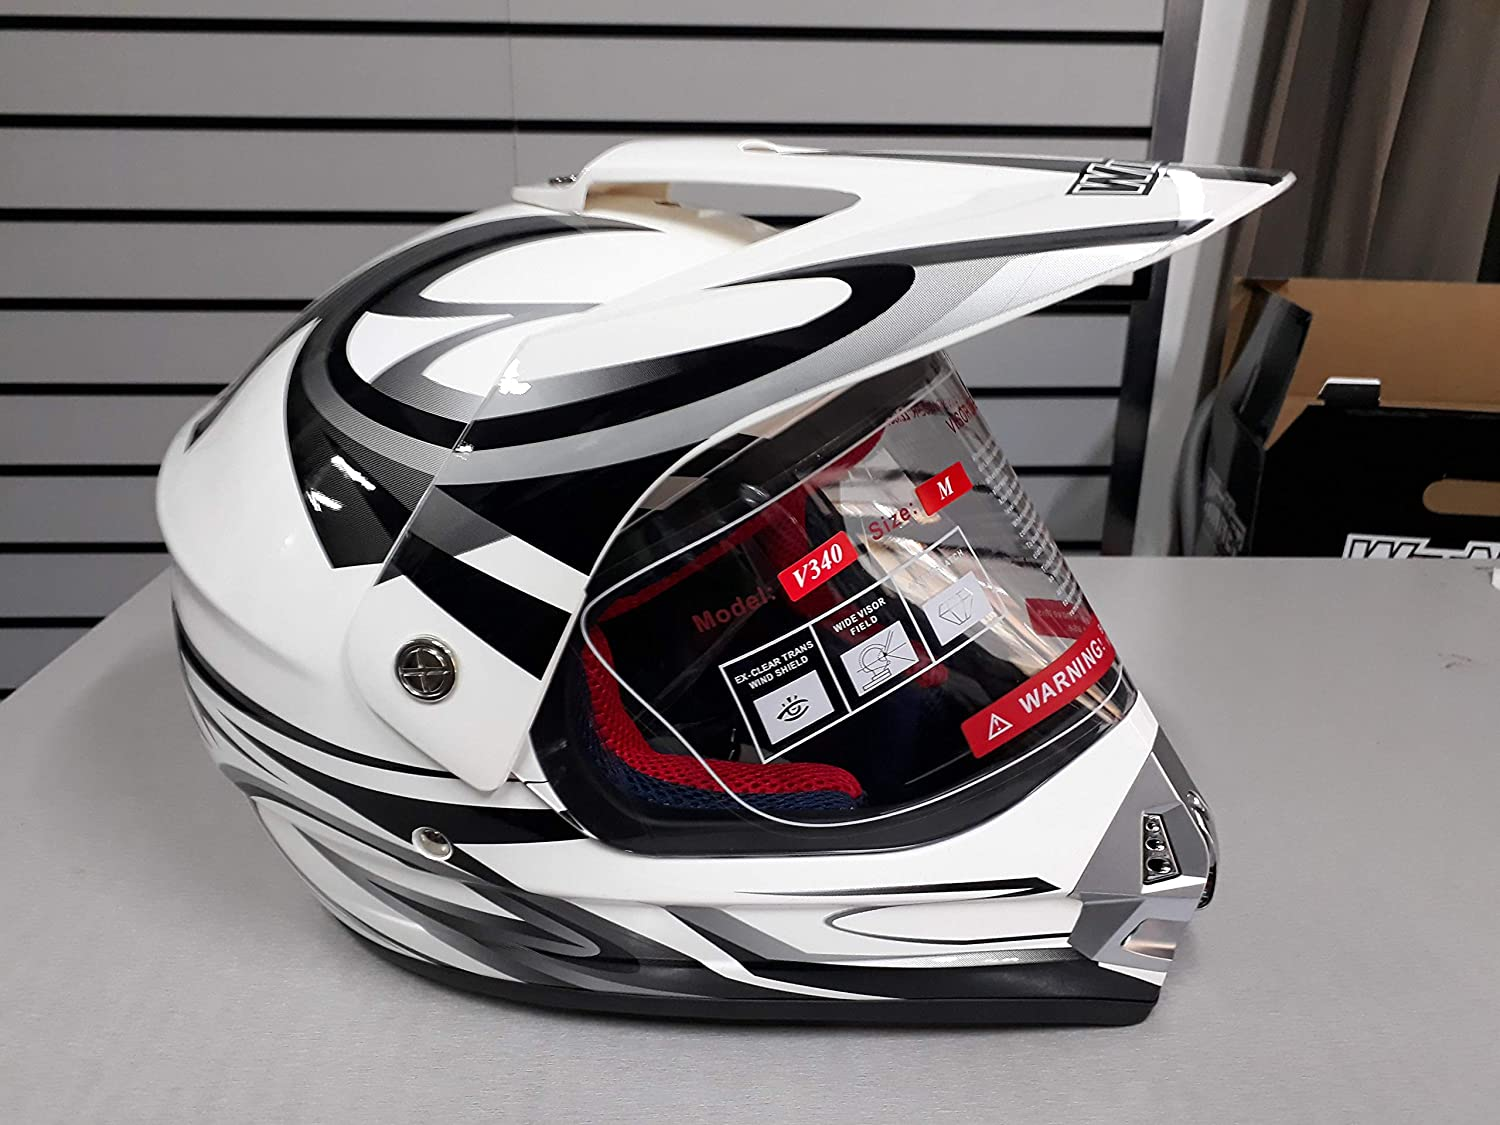 WinNet casco per moto da cross o motard con visiera bianco